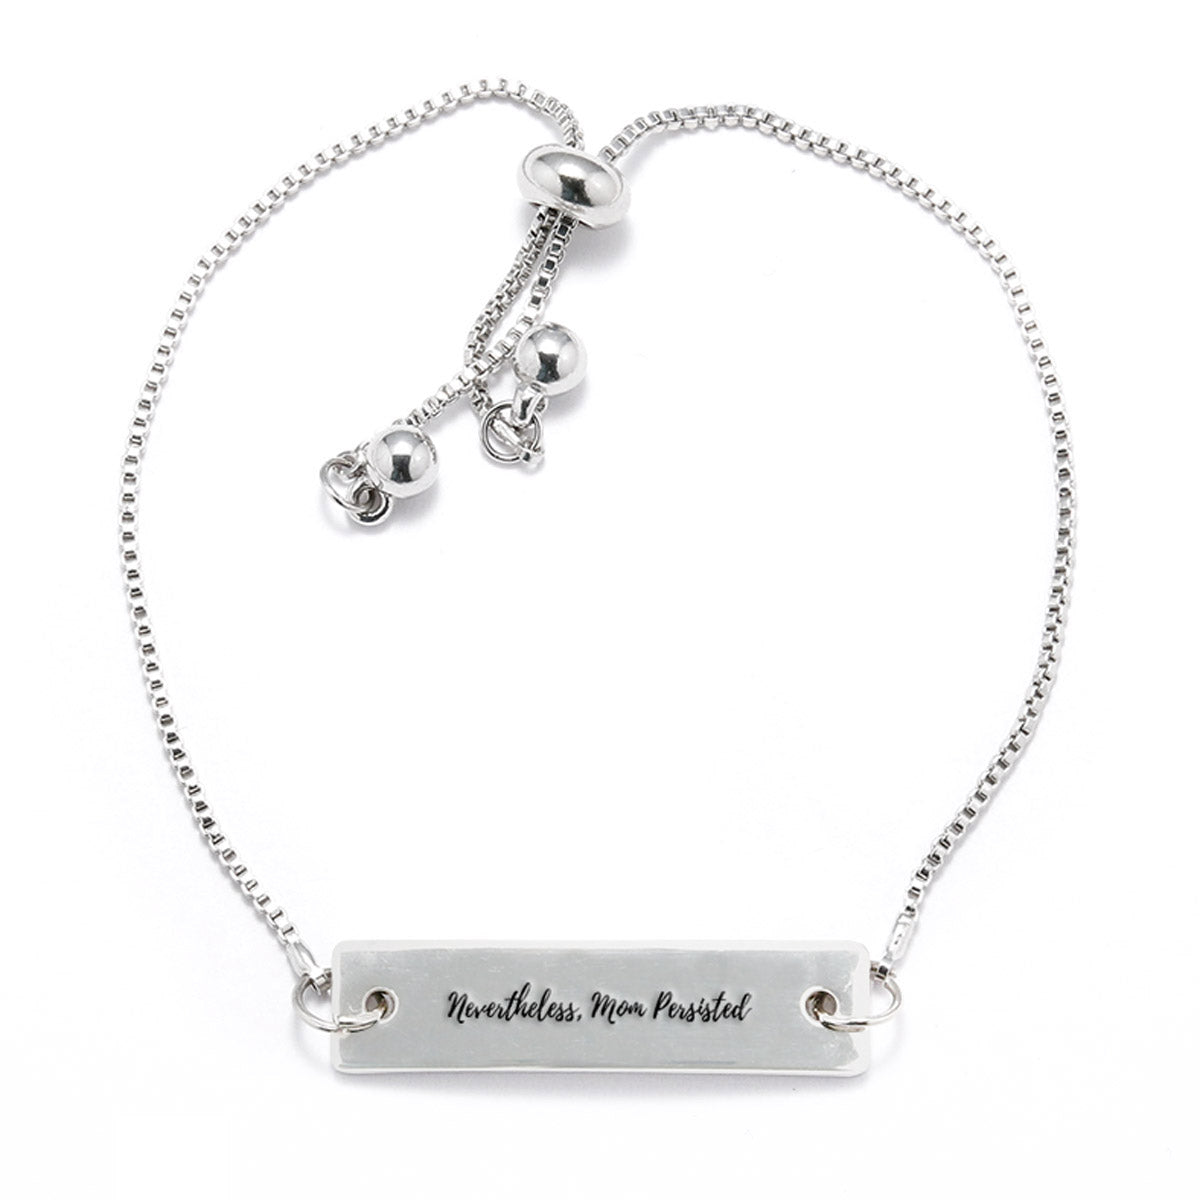 Nevertheless Mom Persisted Silver Bar Adjustable Bracelet - pipercleo.com